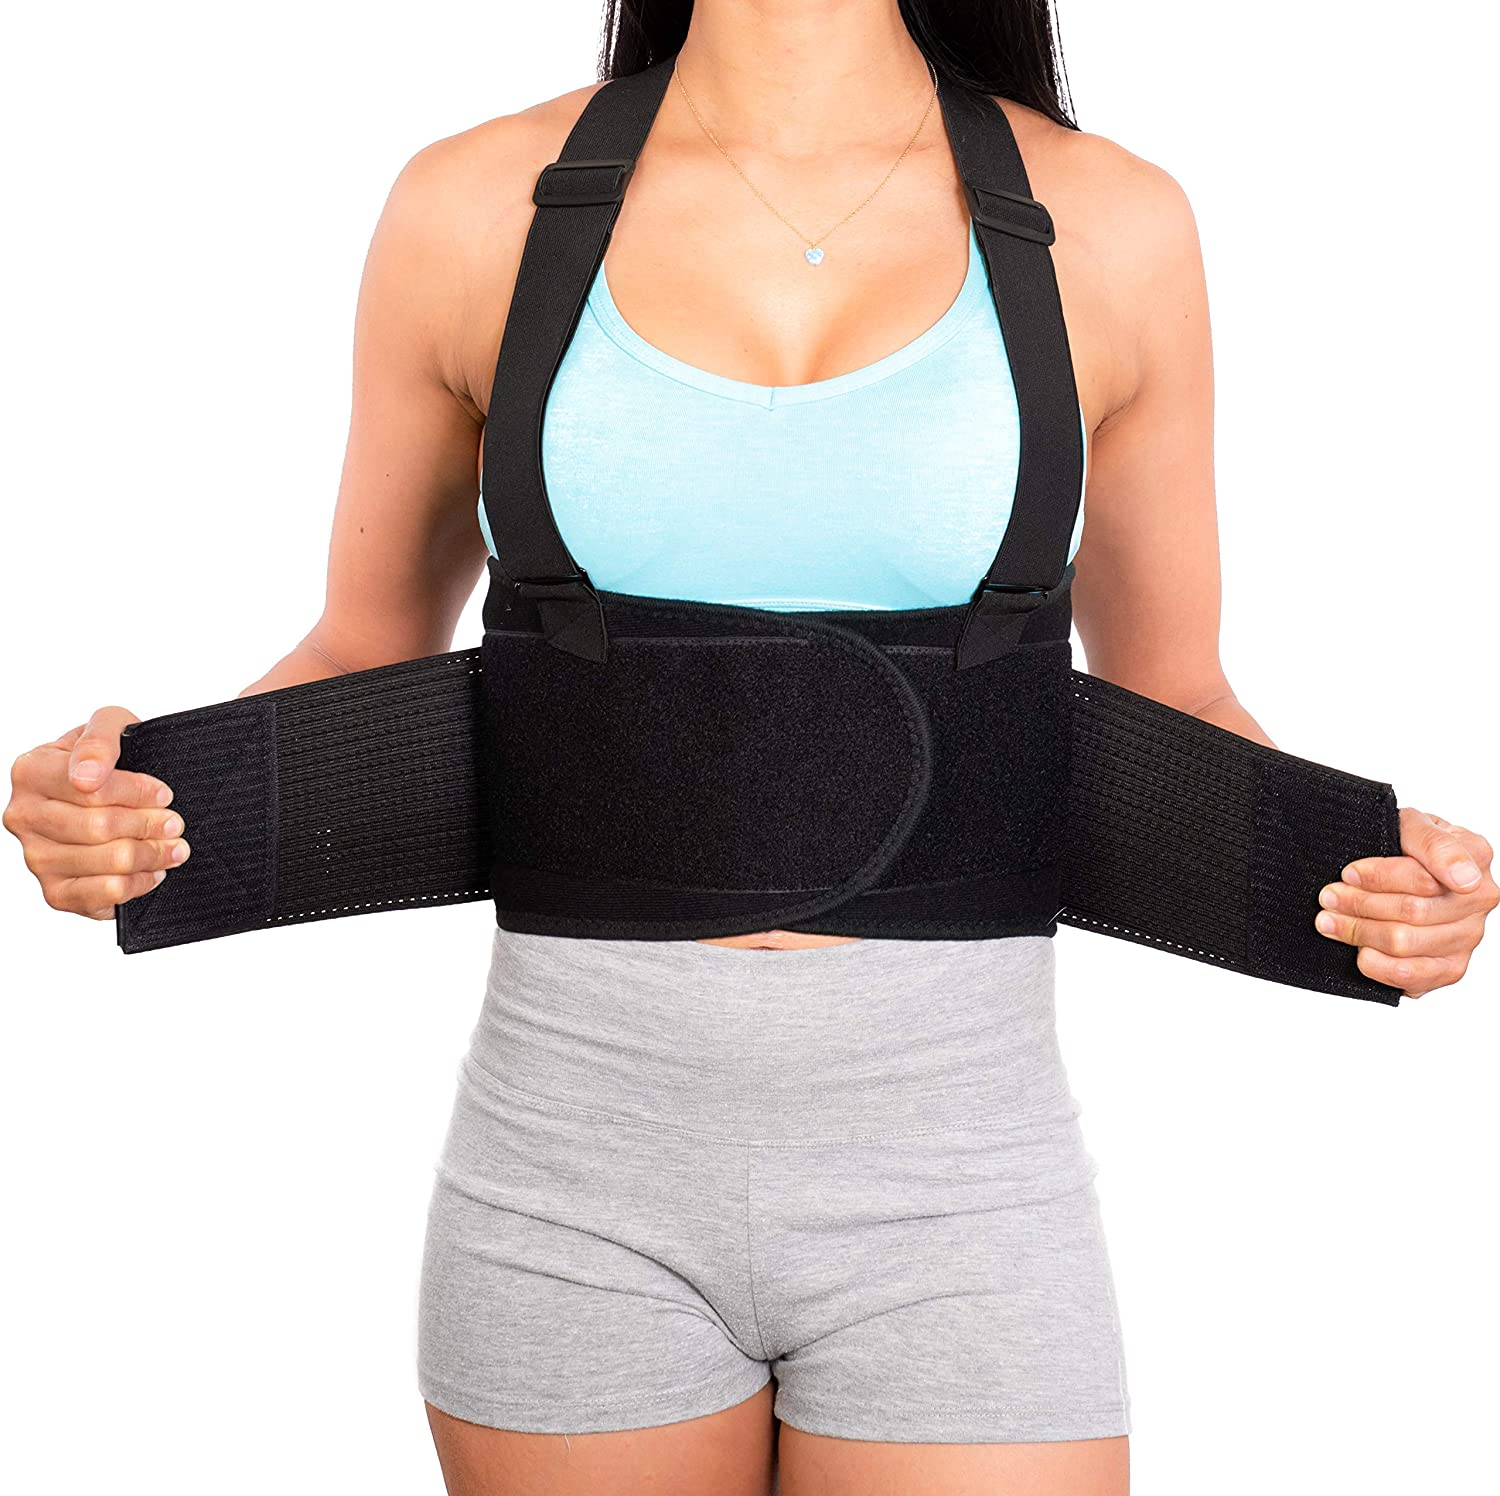 Lower Back Brace with Suspenders | Lumbar Support | Wrap for Posture Recovery, Workout, Herniated Disc Pain Relief | Waist Trimmer Work Ab Belt | Industrial | Adjustable | Women & Men | Black Mesh M